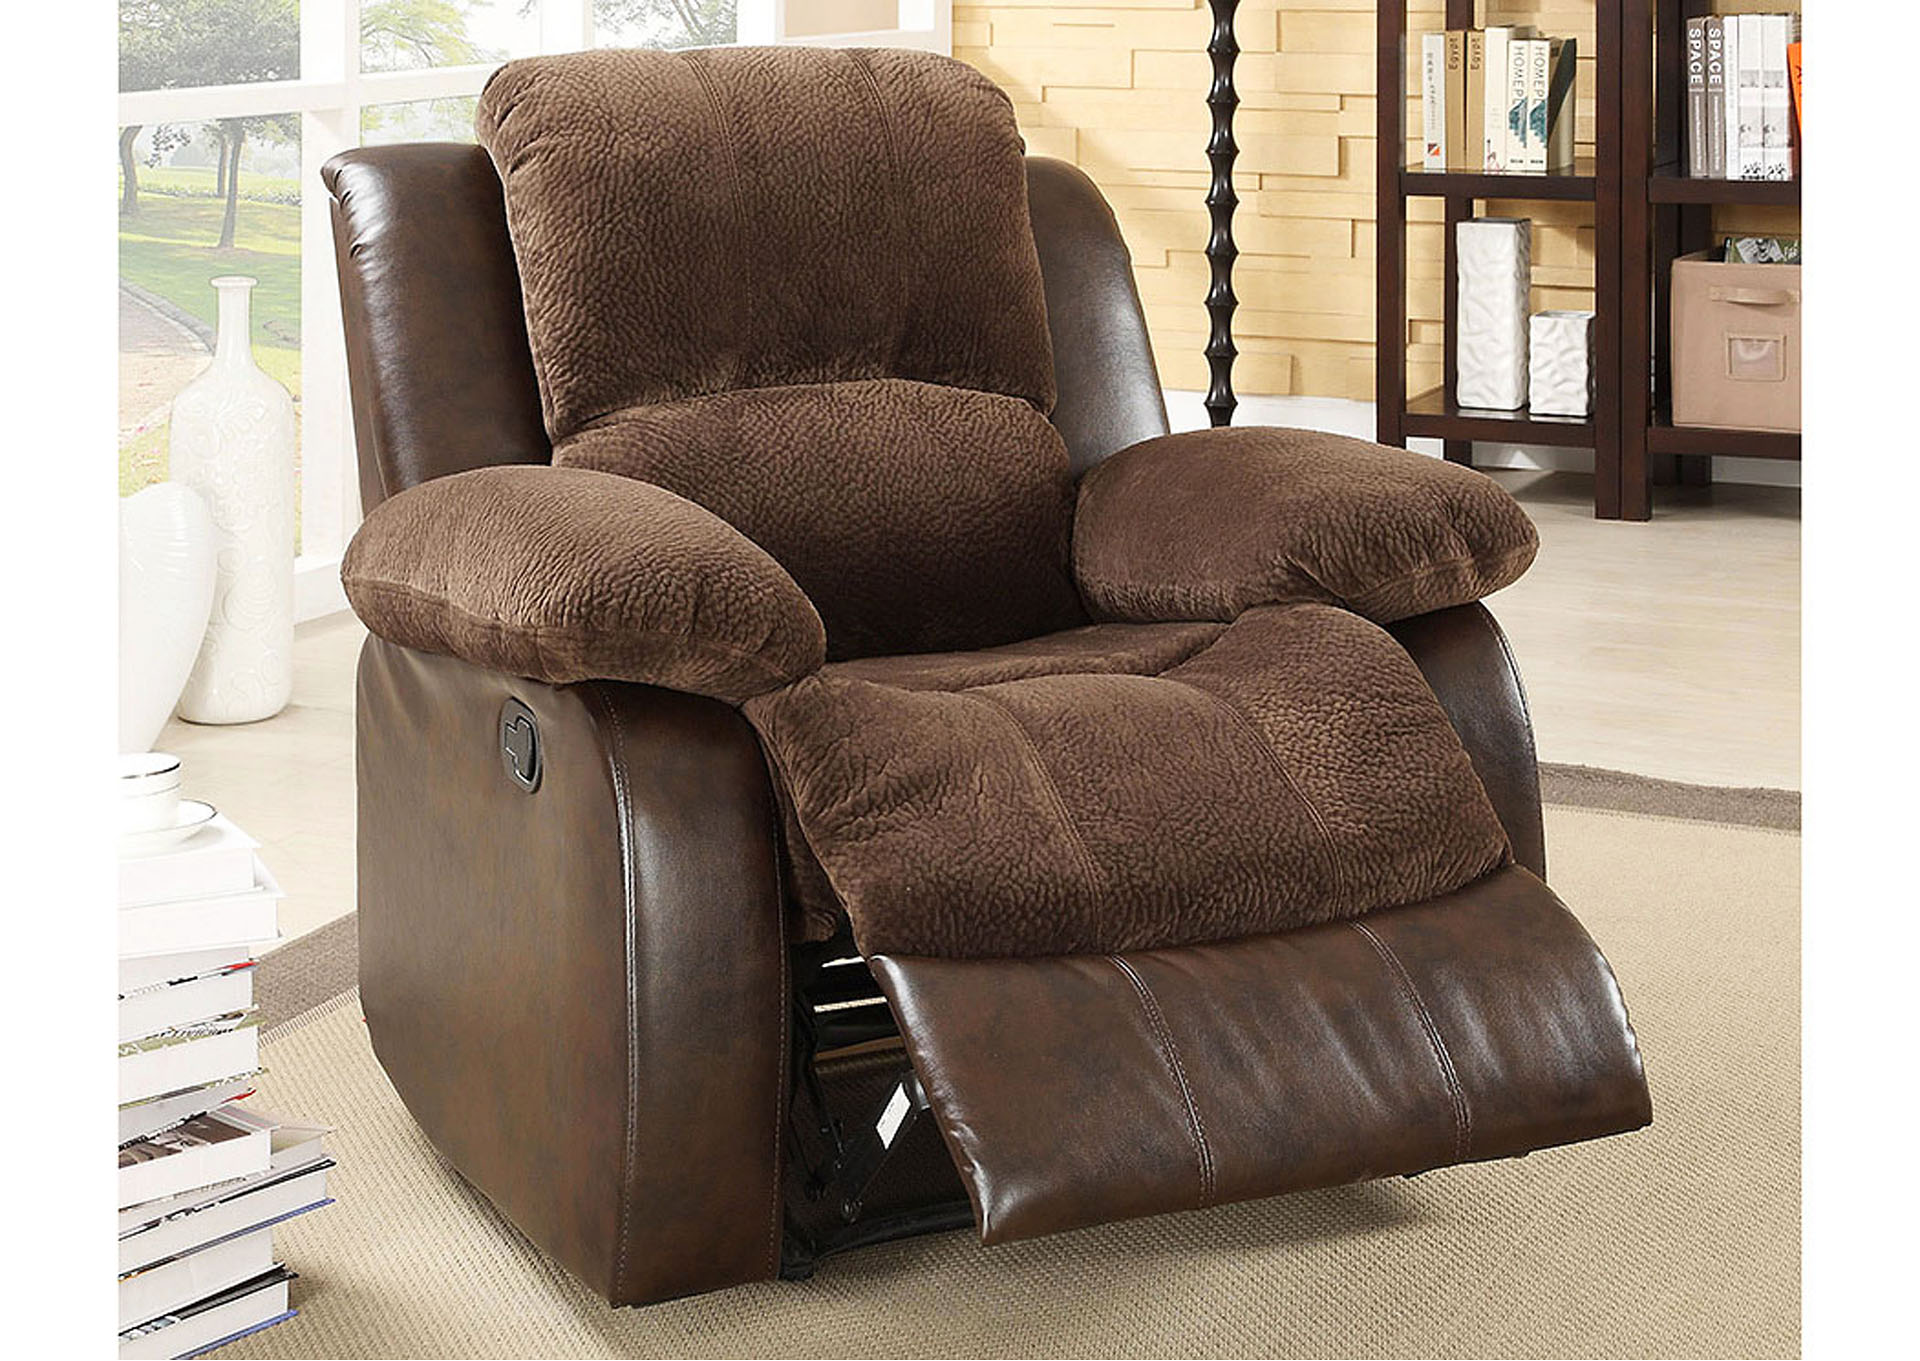 Recliner Chair,Homelegance